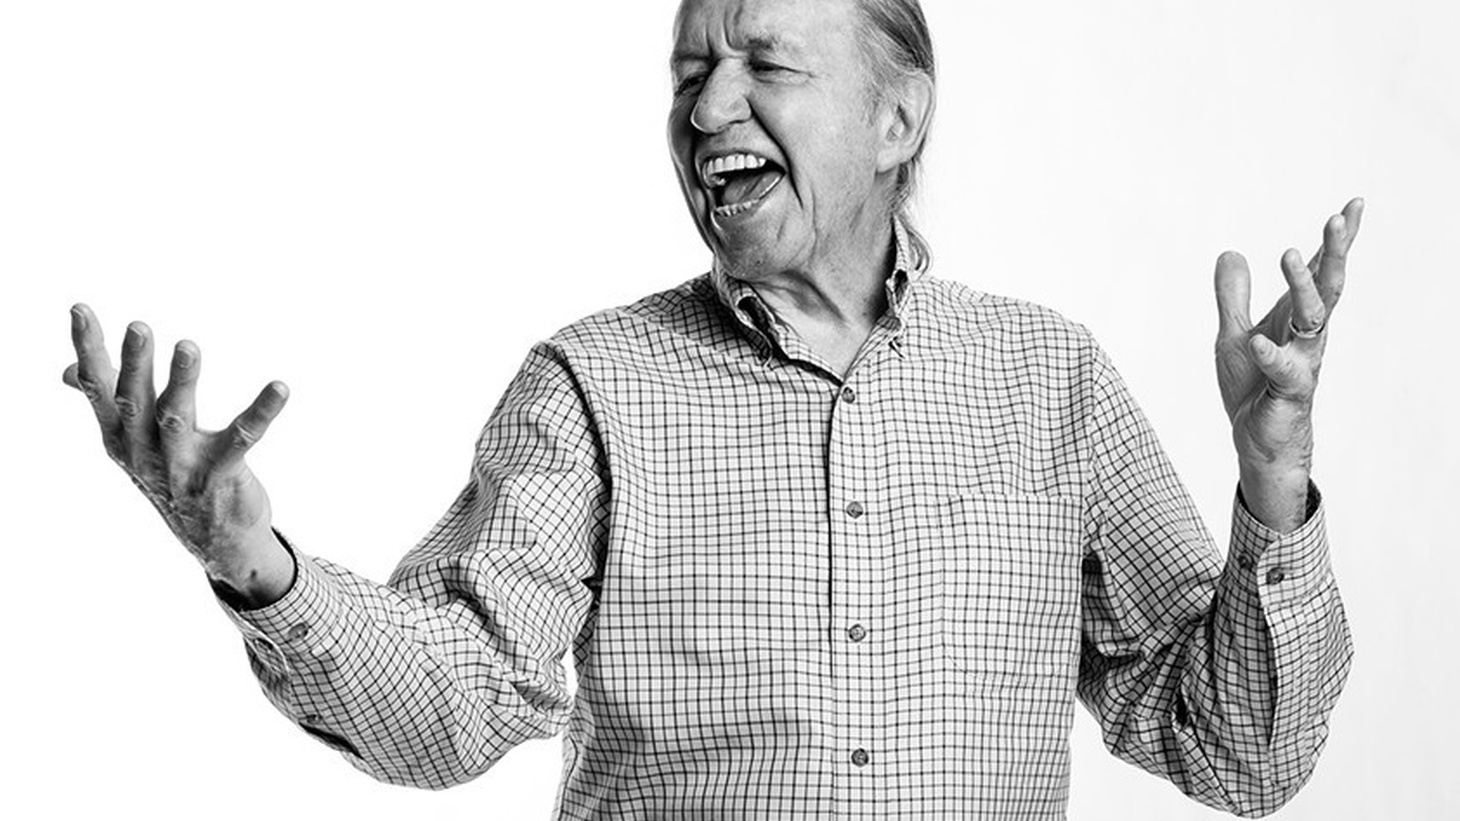 """KCRW's Steve Chiotakis sits down with the station's resident music historian, Eric J. Lawrence, to remember Bob Dorough, the jazz musician best-known for """"School House Rock."""" Dorough died at the age of 94."""